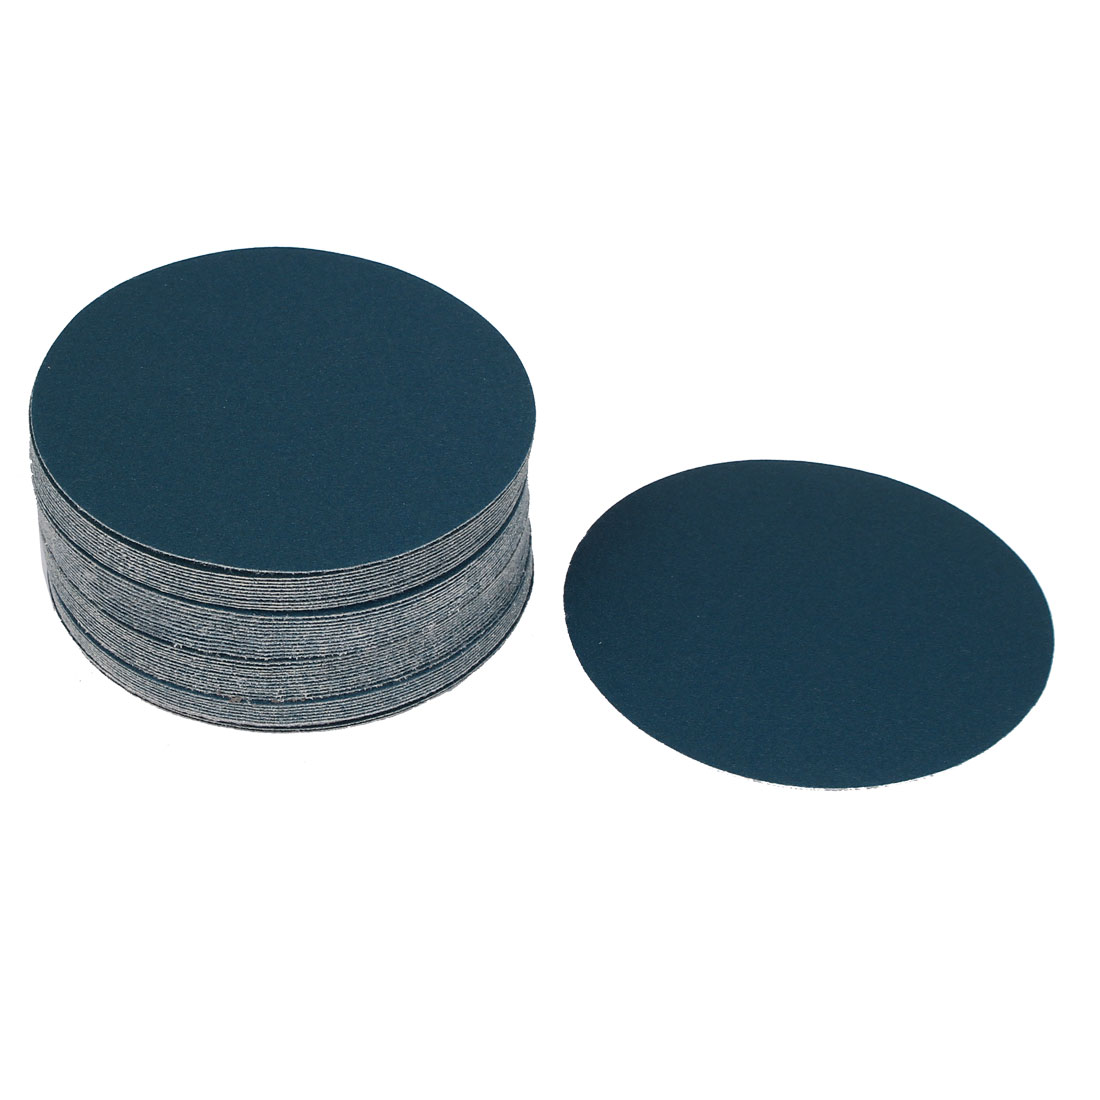 "5"" Sandpaper Auto Car Paint Polishing Sanding Disc Hook and Loop Fastener 150 Grit 50pcs"